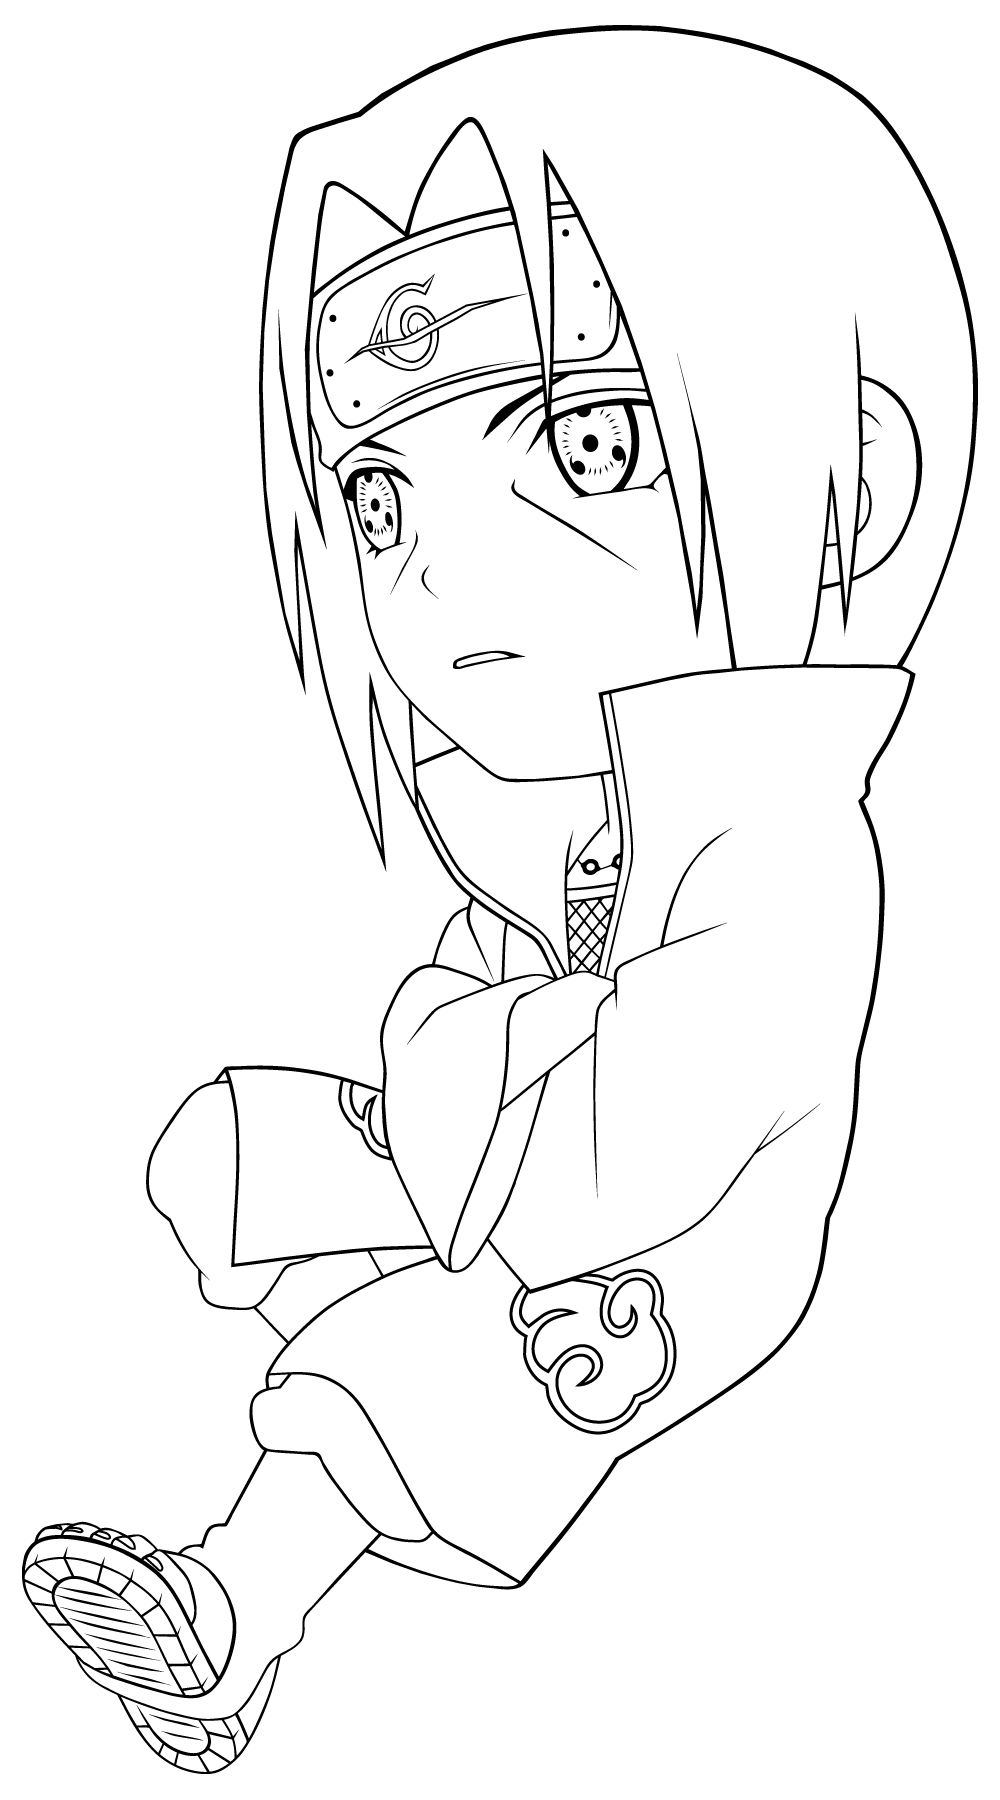 Uchiha itachi naruto coloring pages pinterest coloriage naruto coloriage and dessin - Coloriage de dessin anime ...